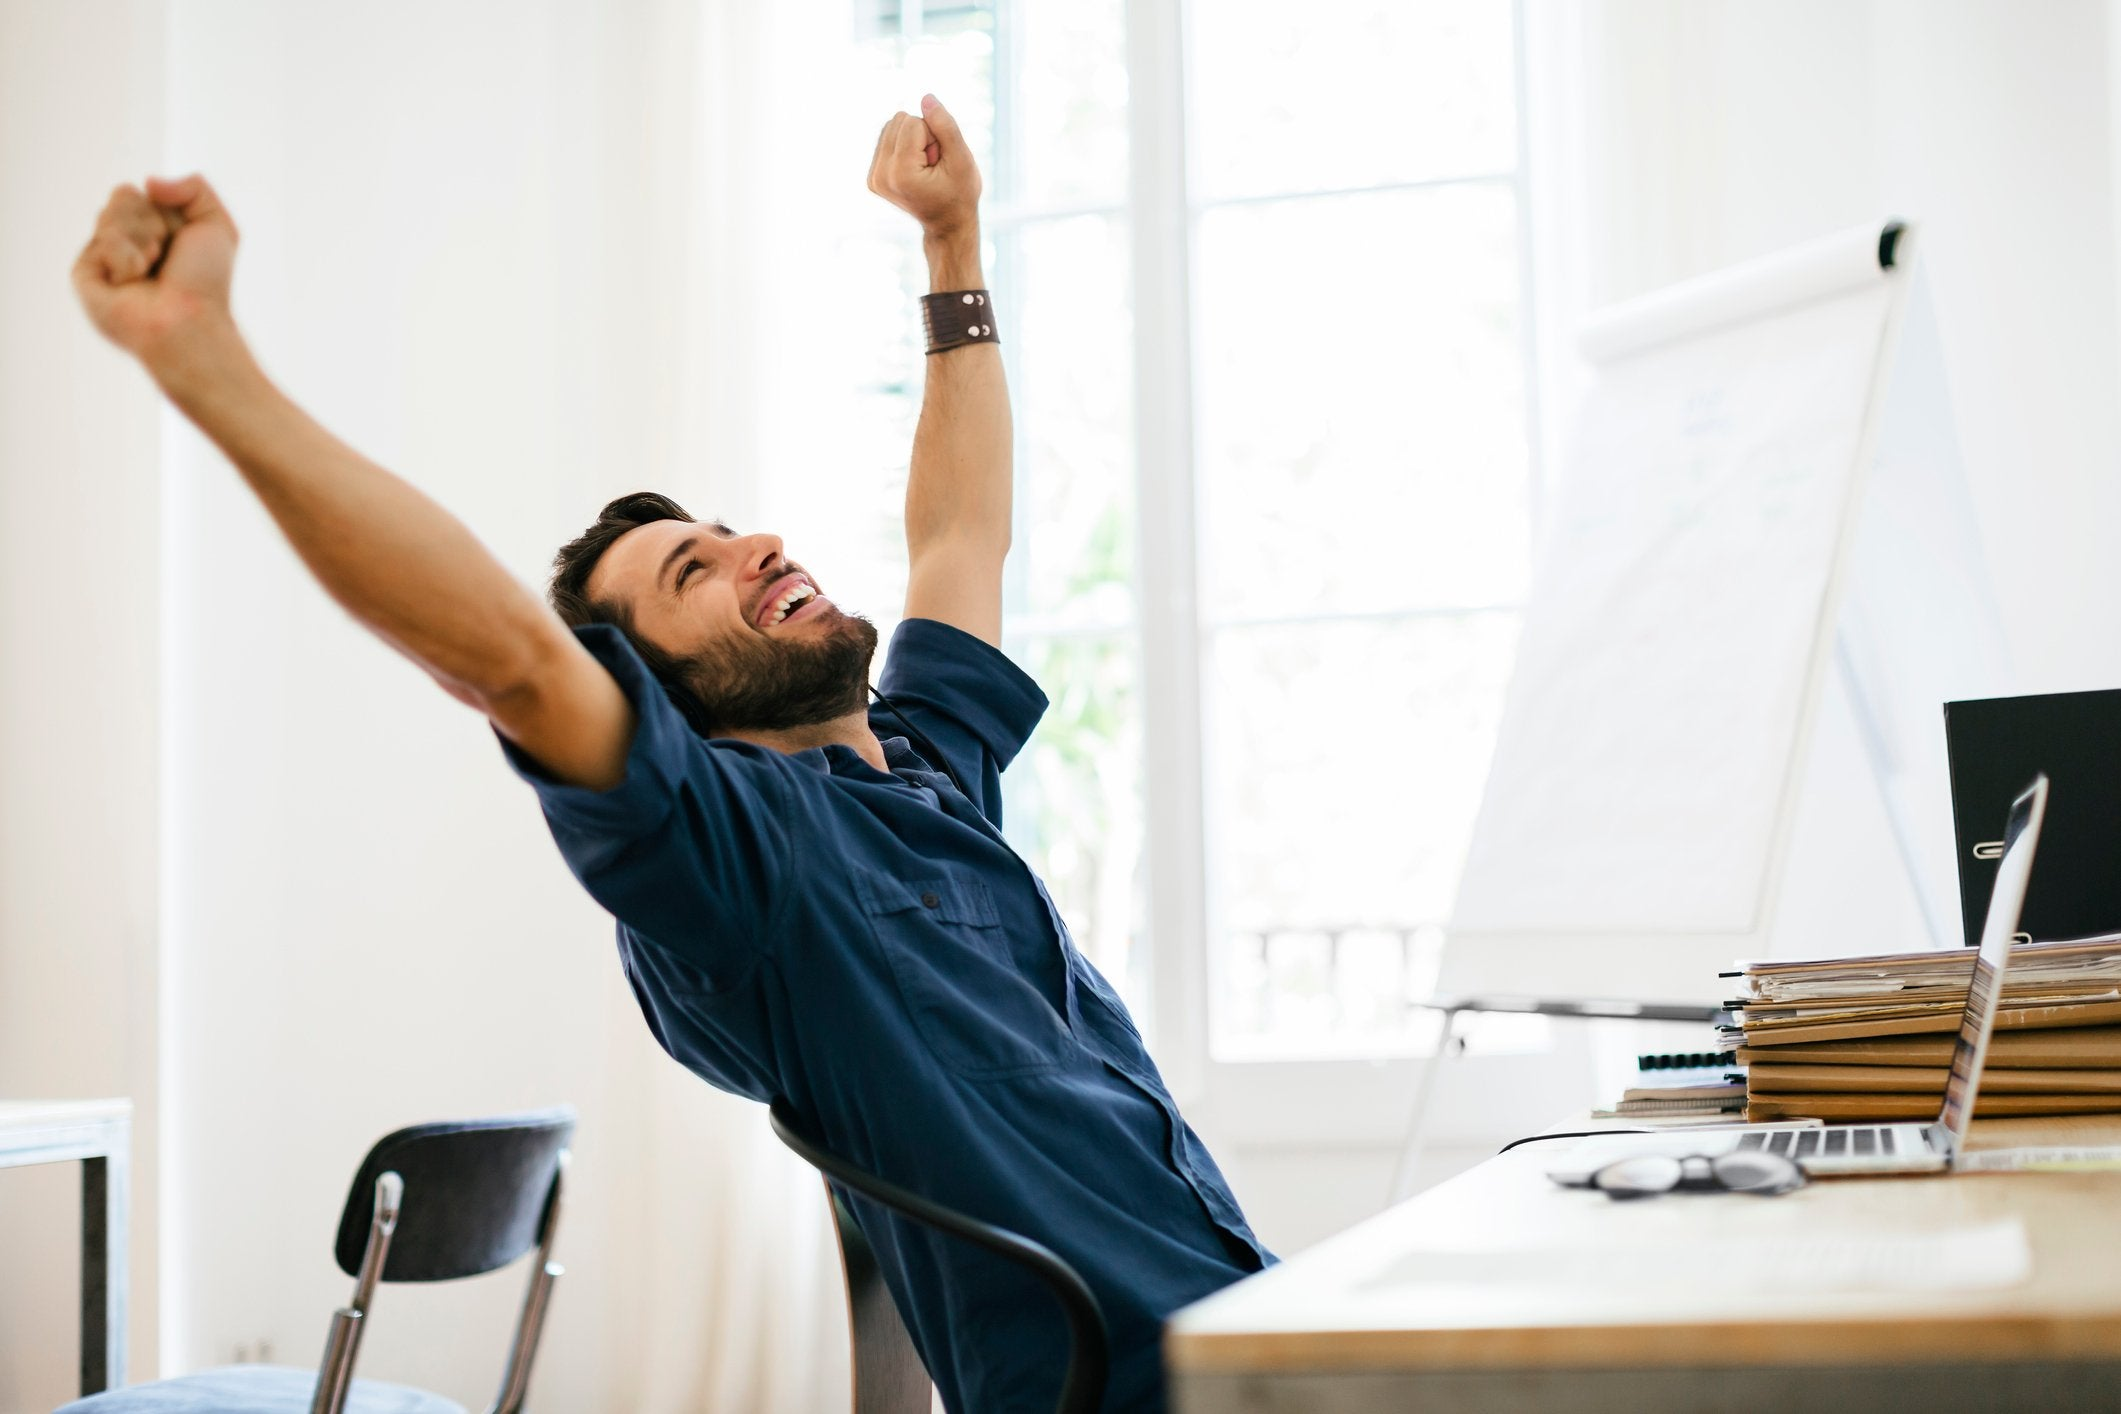 Entrepreneur Events: Why You Need a 'Success is Easy' Mindset - Nov 06, 2019